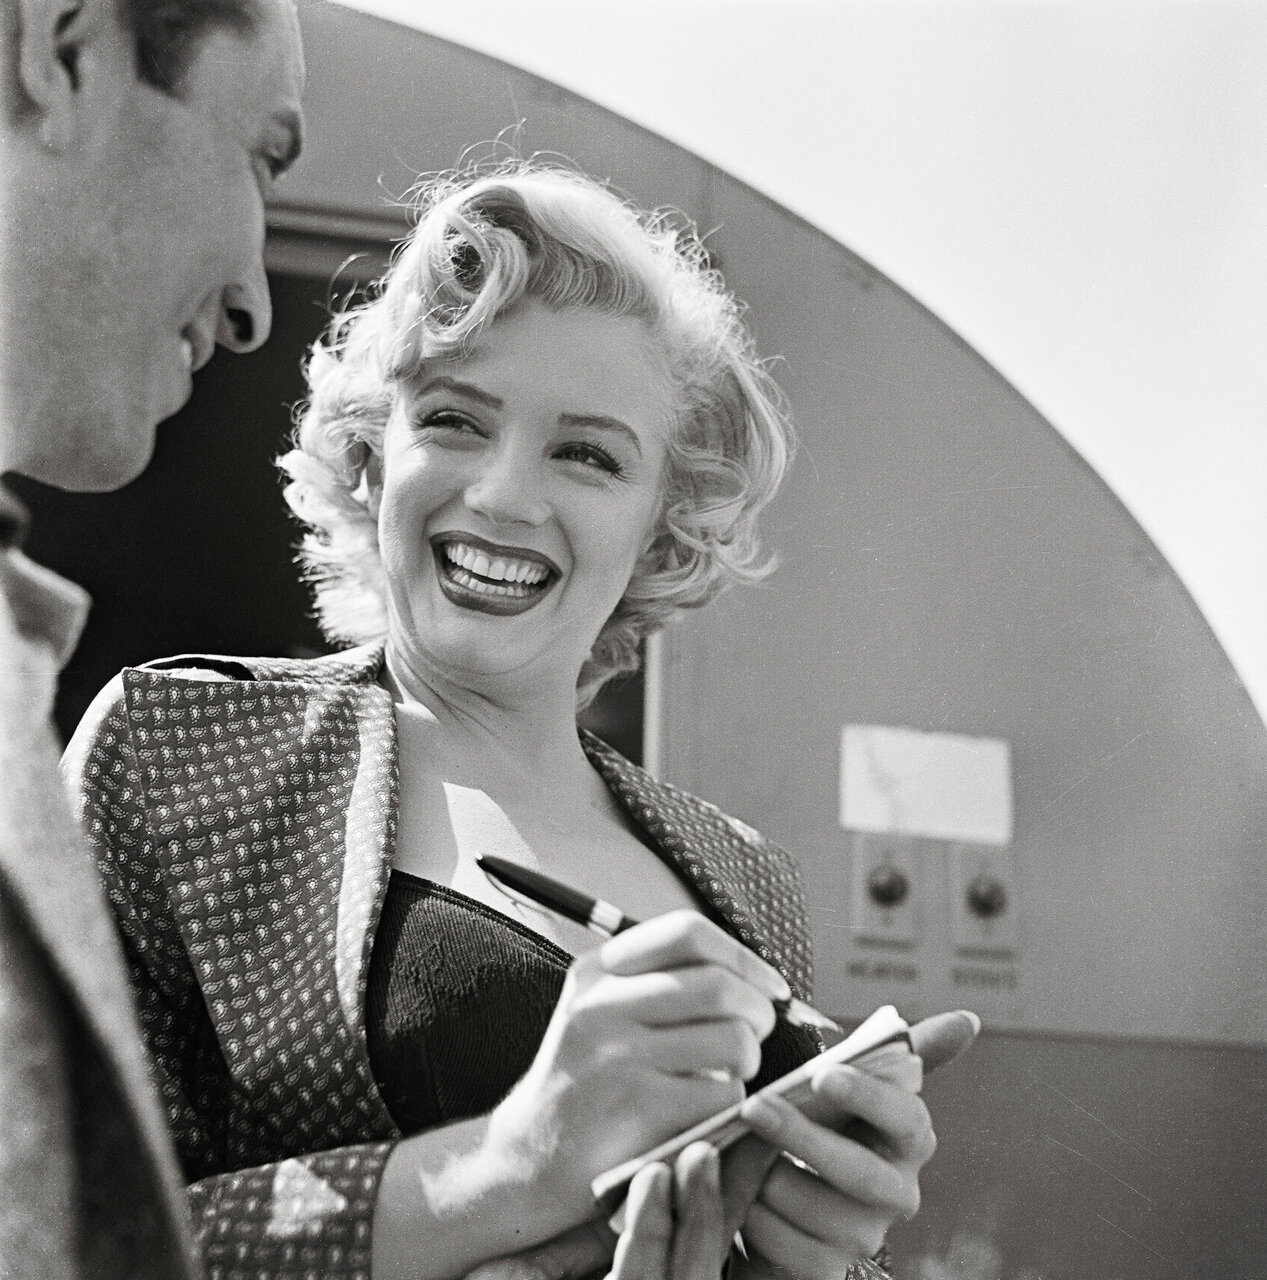 Portrait of Marilyn Monroe Signing Autograph for Young Man